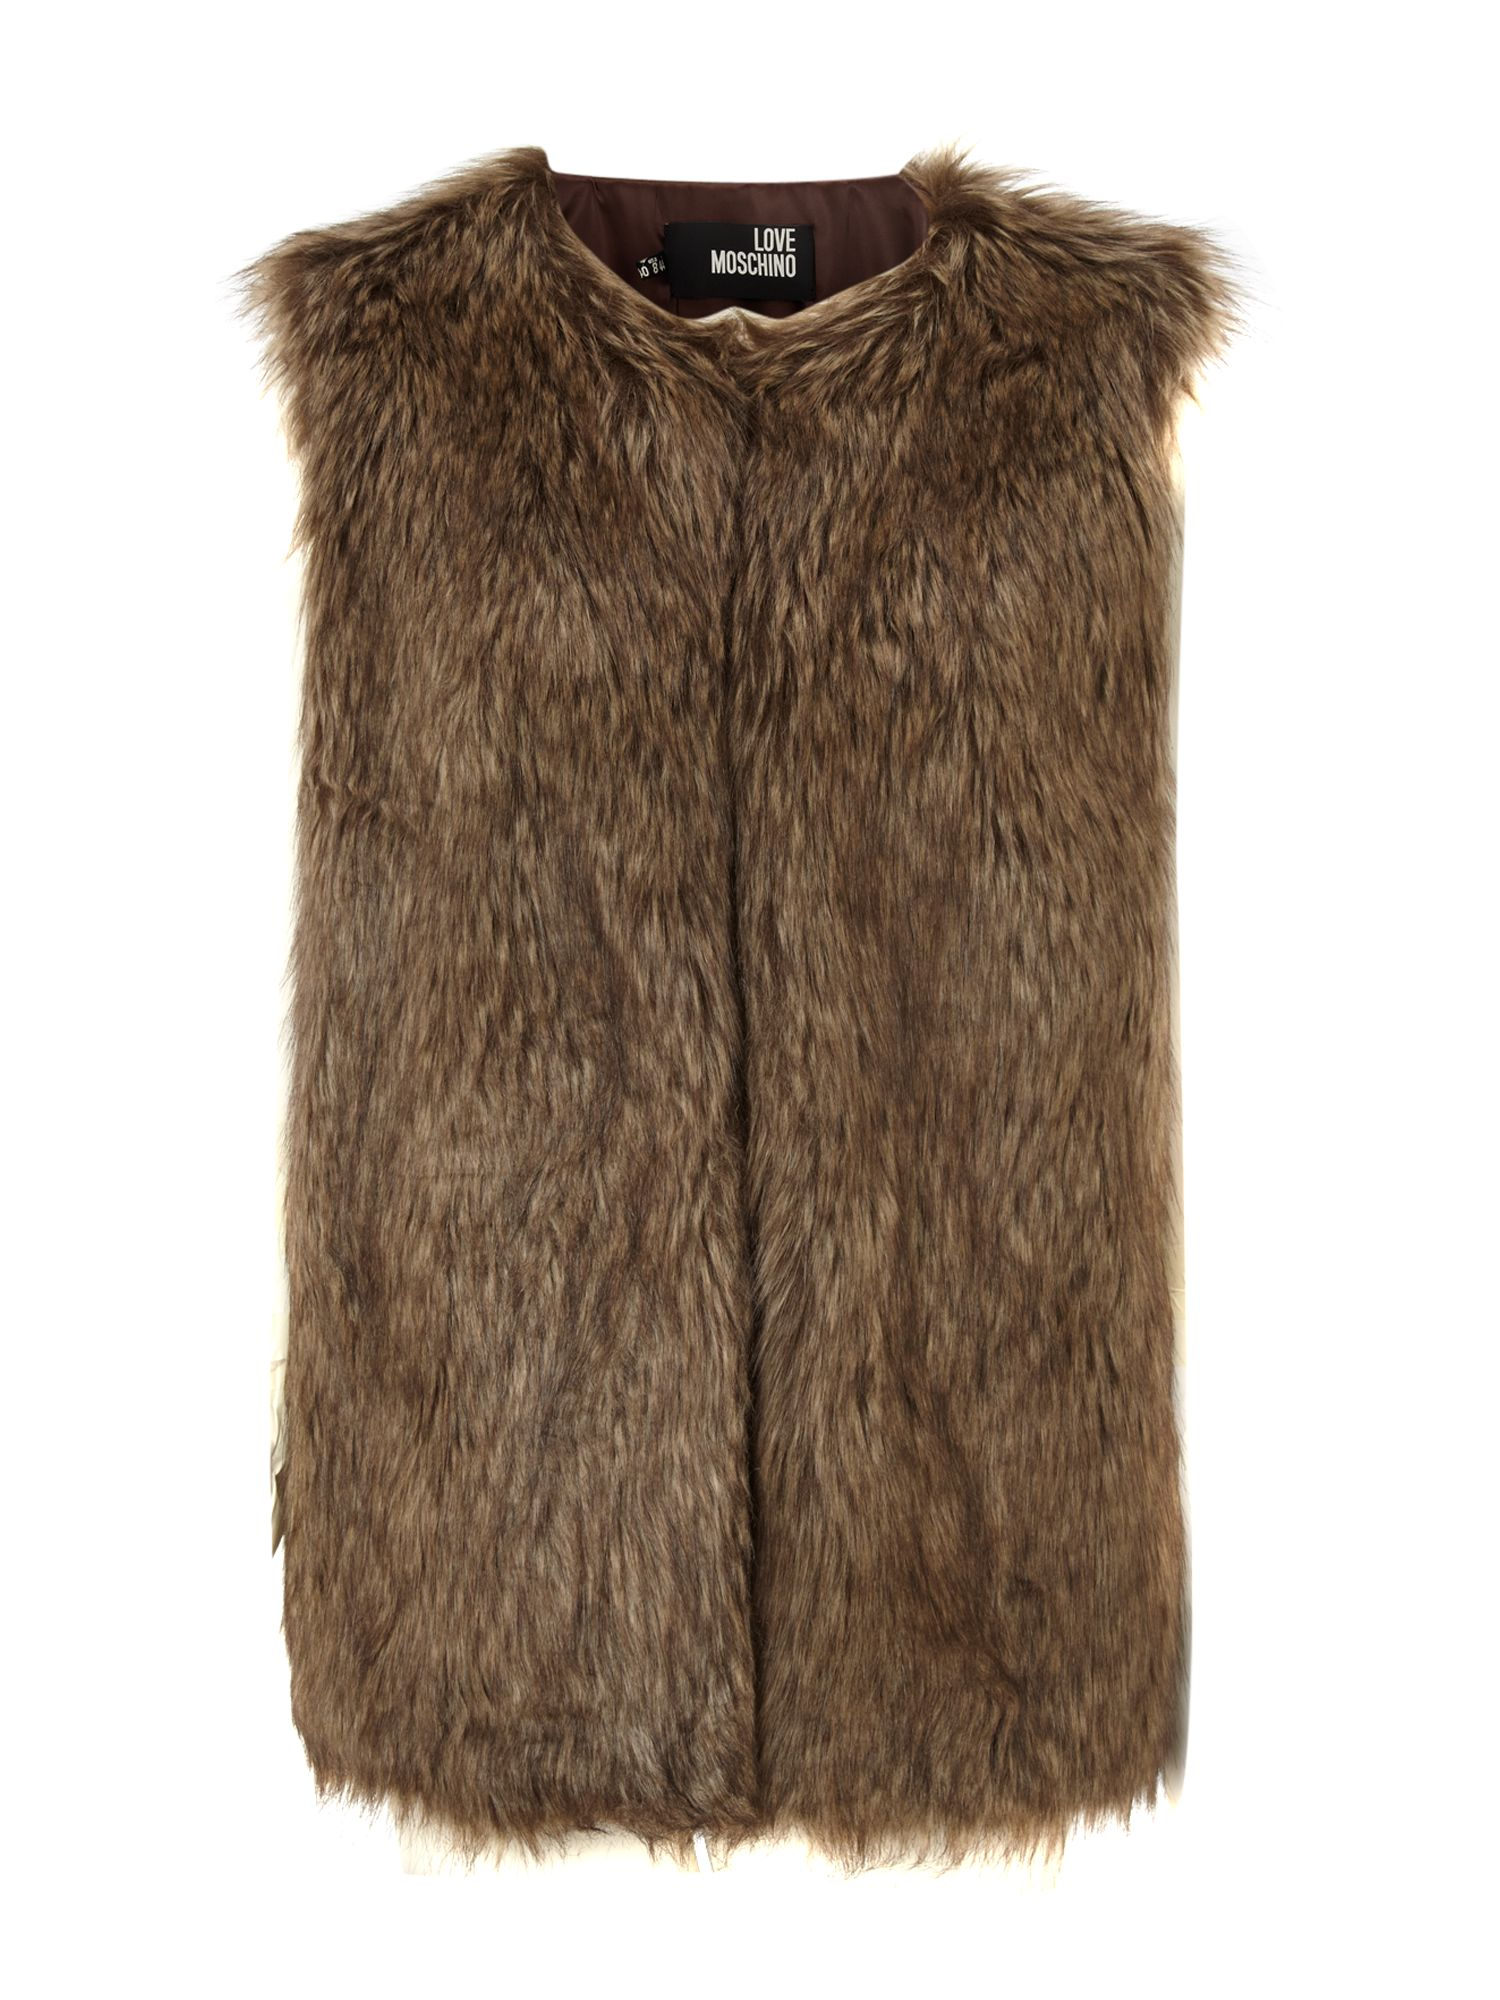 Mela. A faux fur gilet is a staple cover up this season. Try this one over a white shirt, jeans and finish with tan peep toe boots. - Soft faux fur finish- Sleeveless.